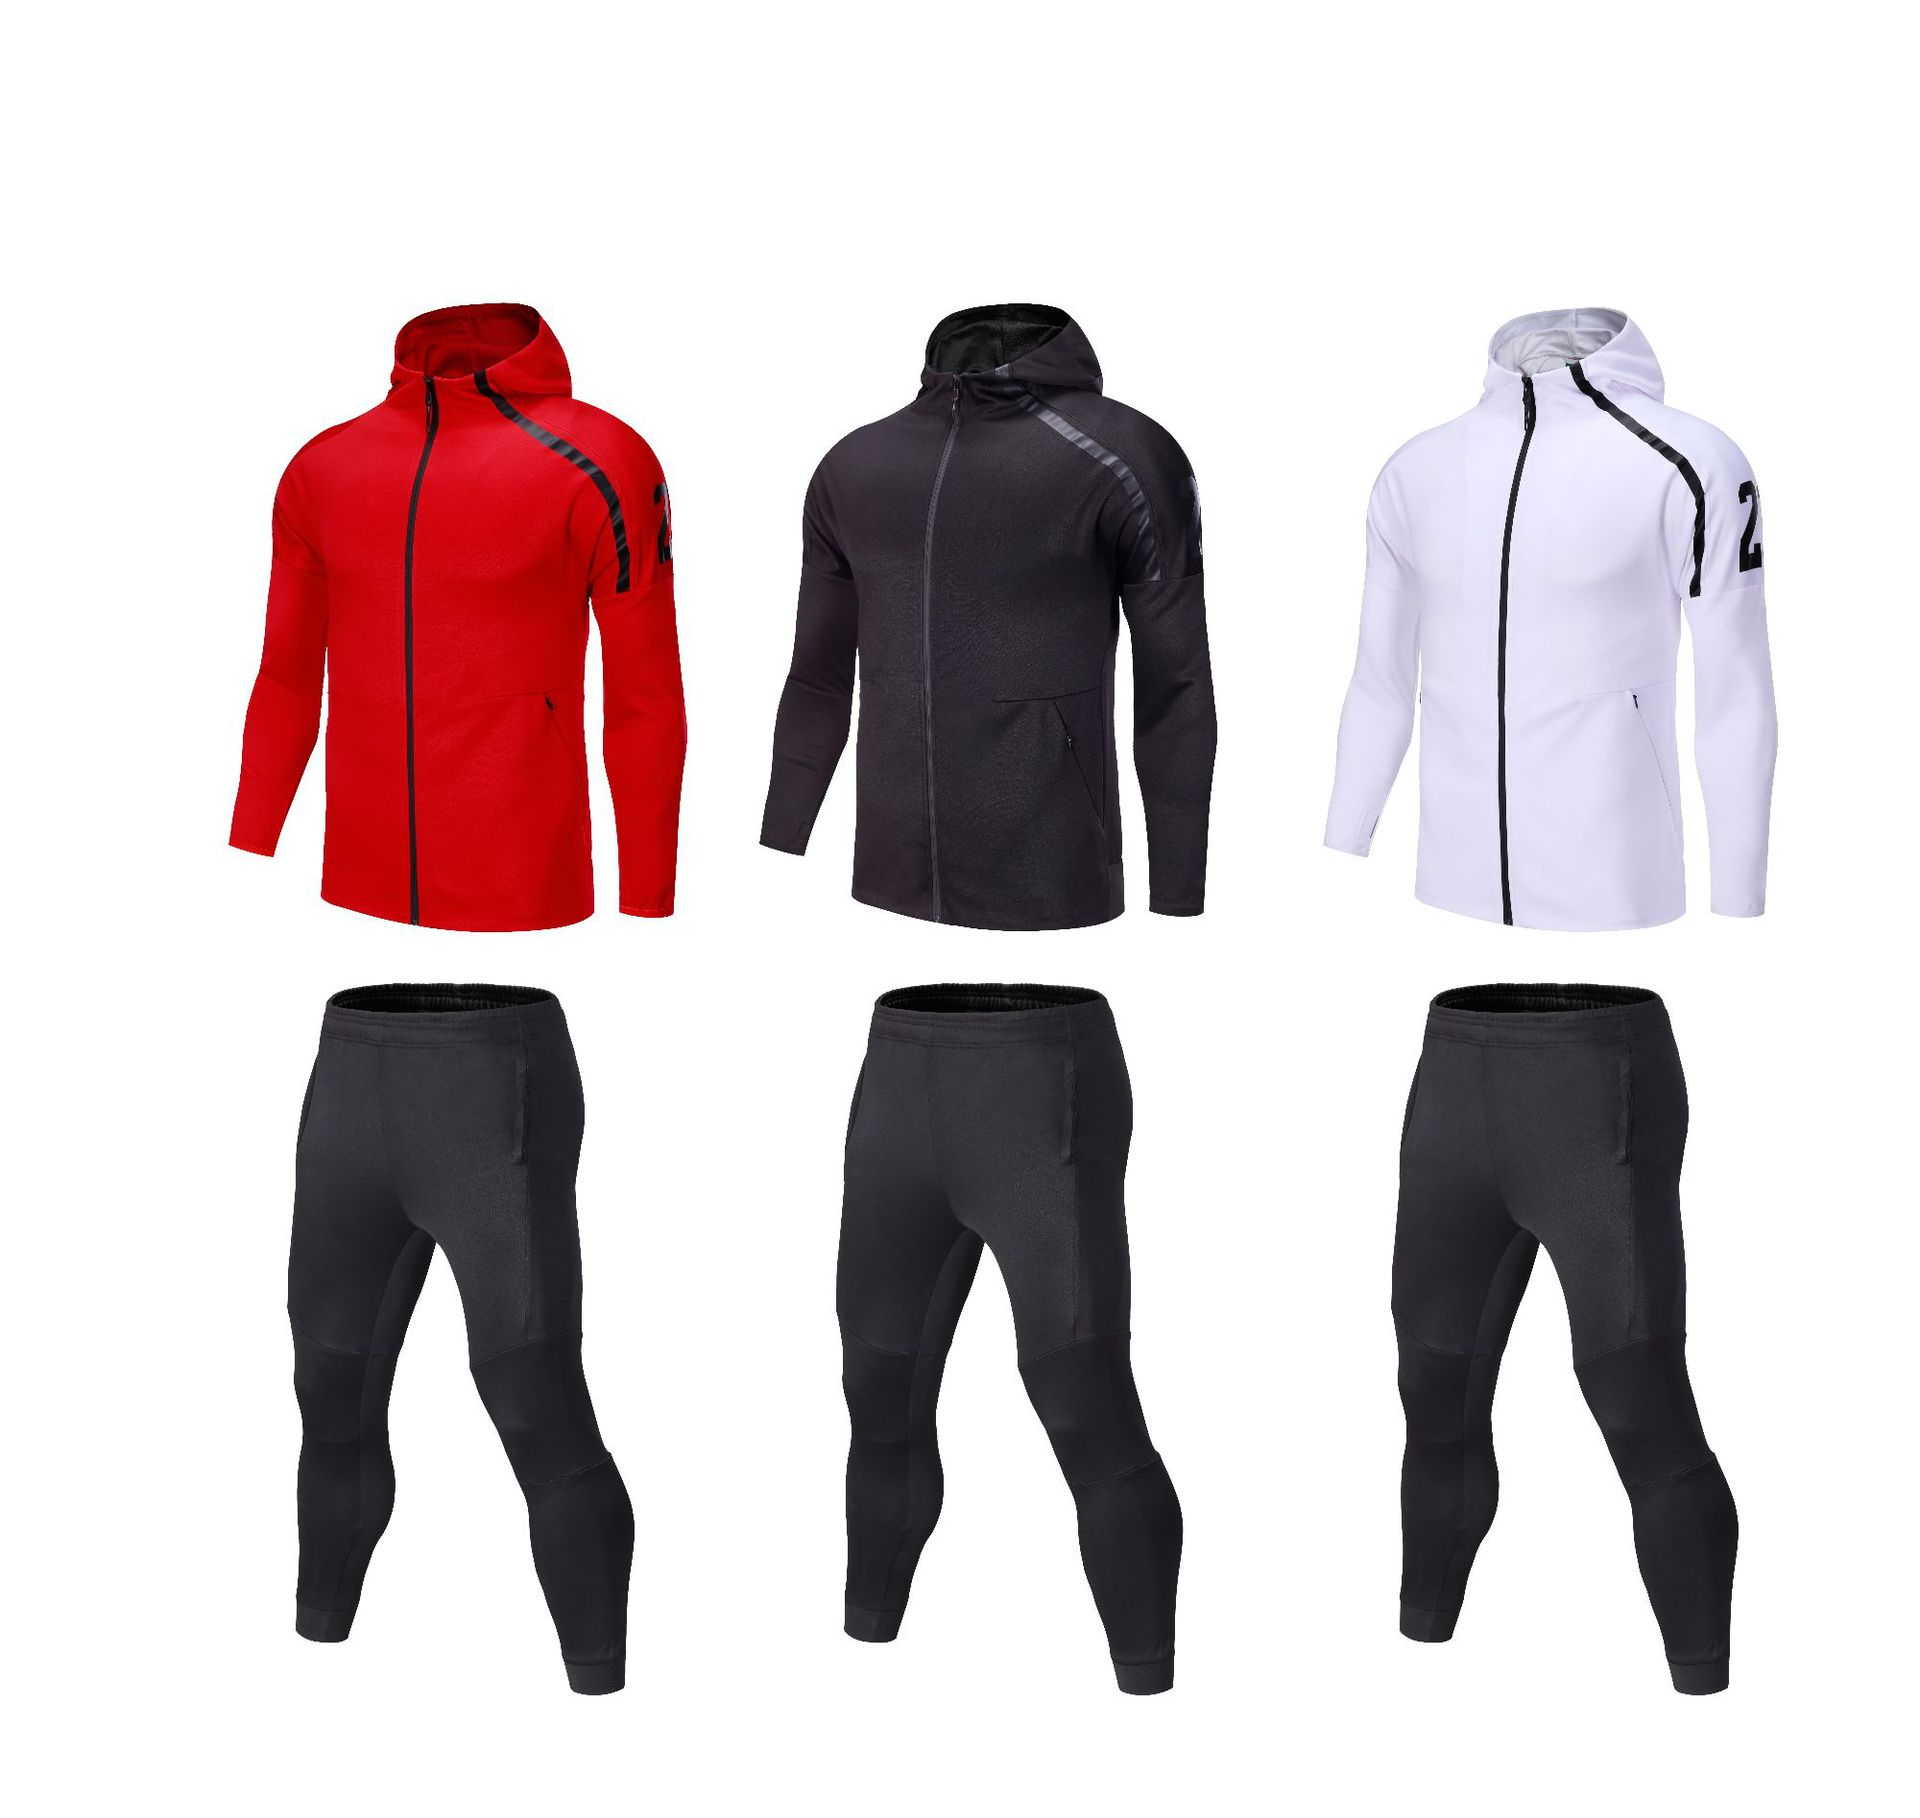 Basketball Sports Set Men's Autumn And Winter College Student Long Sleeve Night Running Fitness Suit Customizable Casual Footbal